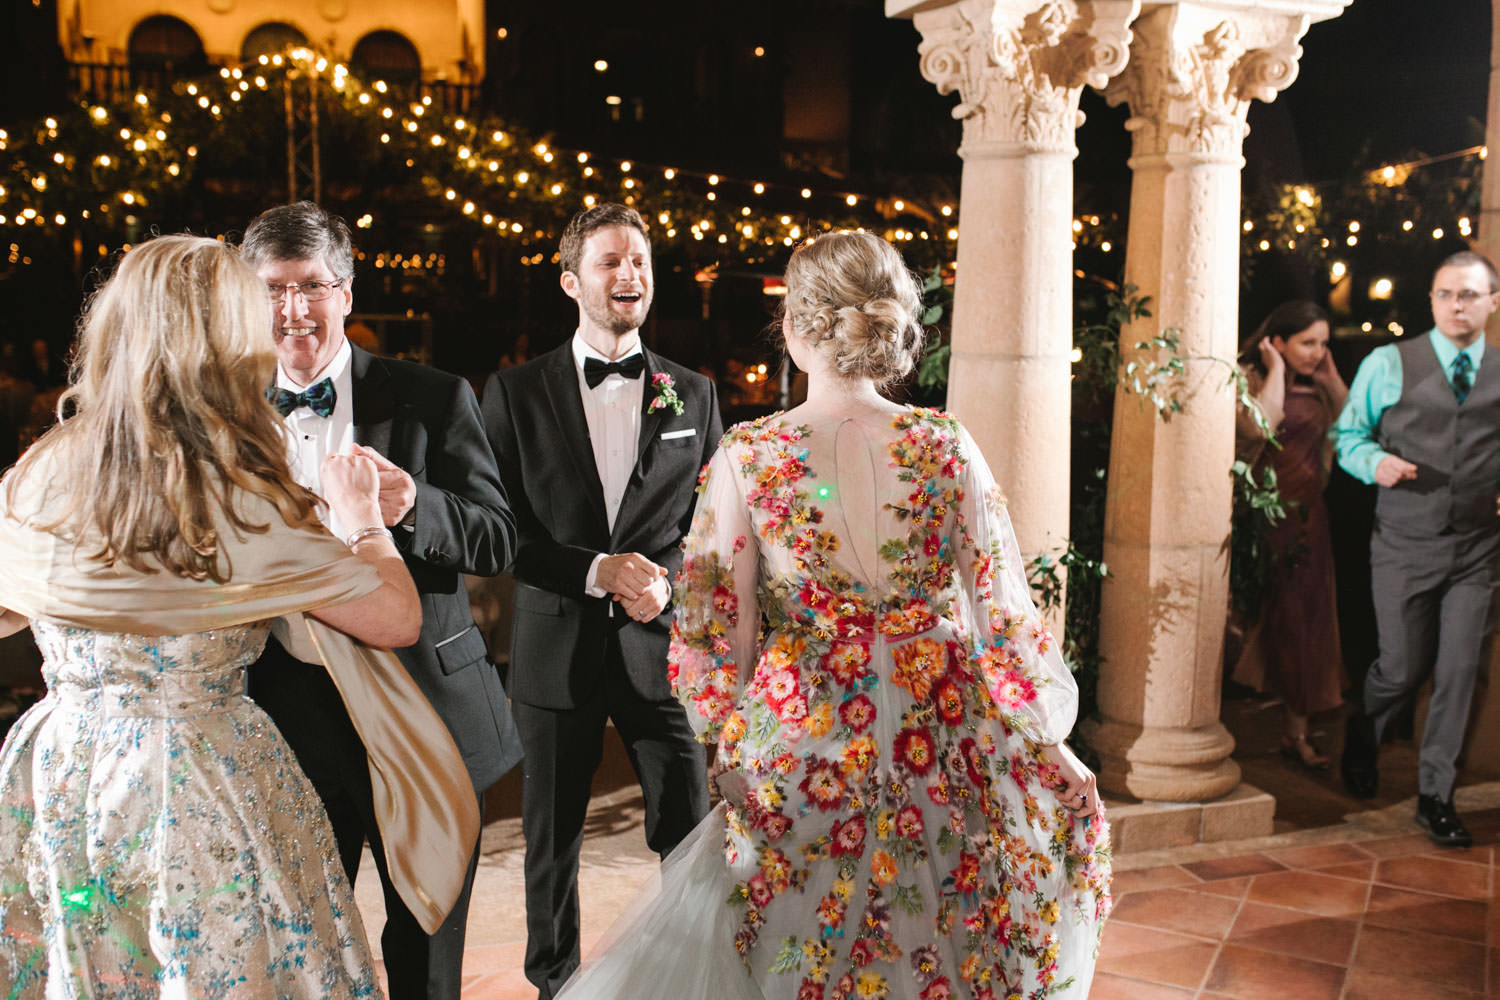 Bride and groom dance on a stage with with wagon wheel market lights covered in greenery in the background. Bride wearing colorful Marchesa wedding gown with blue, pink, yellow, green, and orange floral appliques. A Wedding Photographer's Fairmont Grand Del Mar Wedding